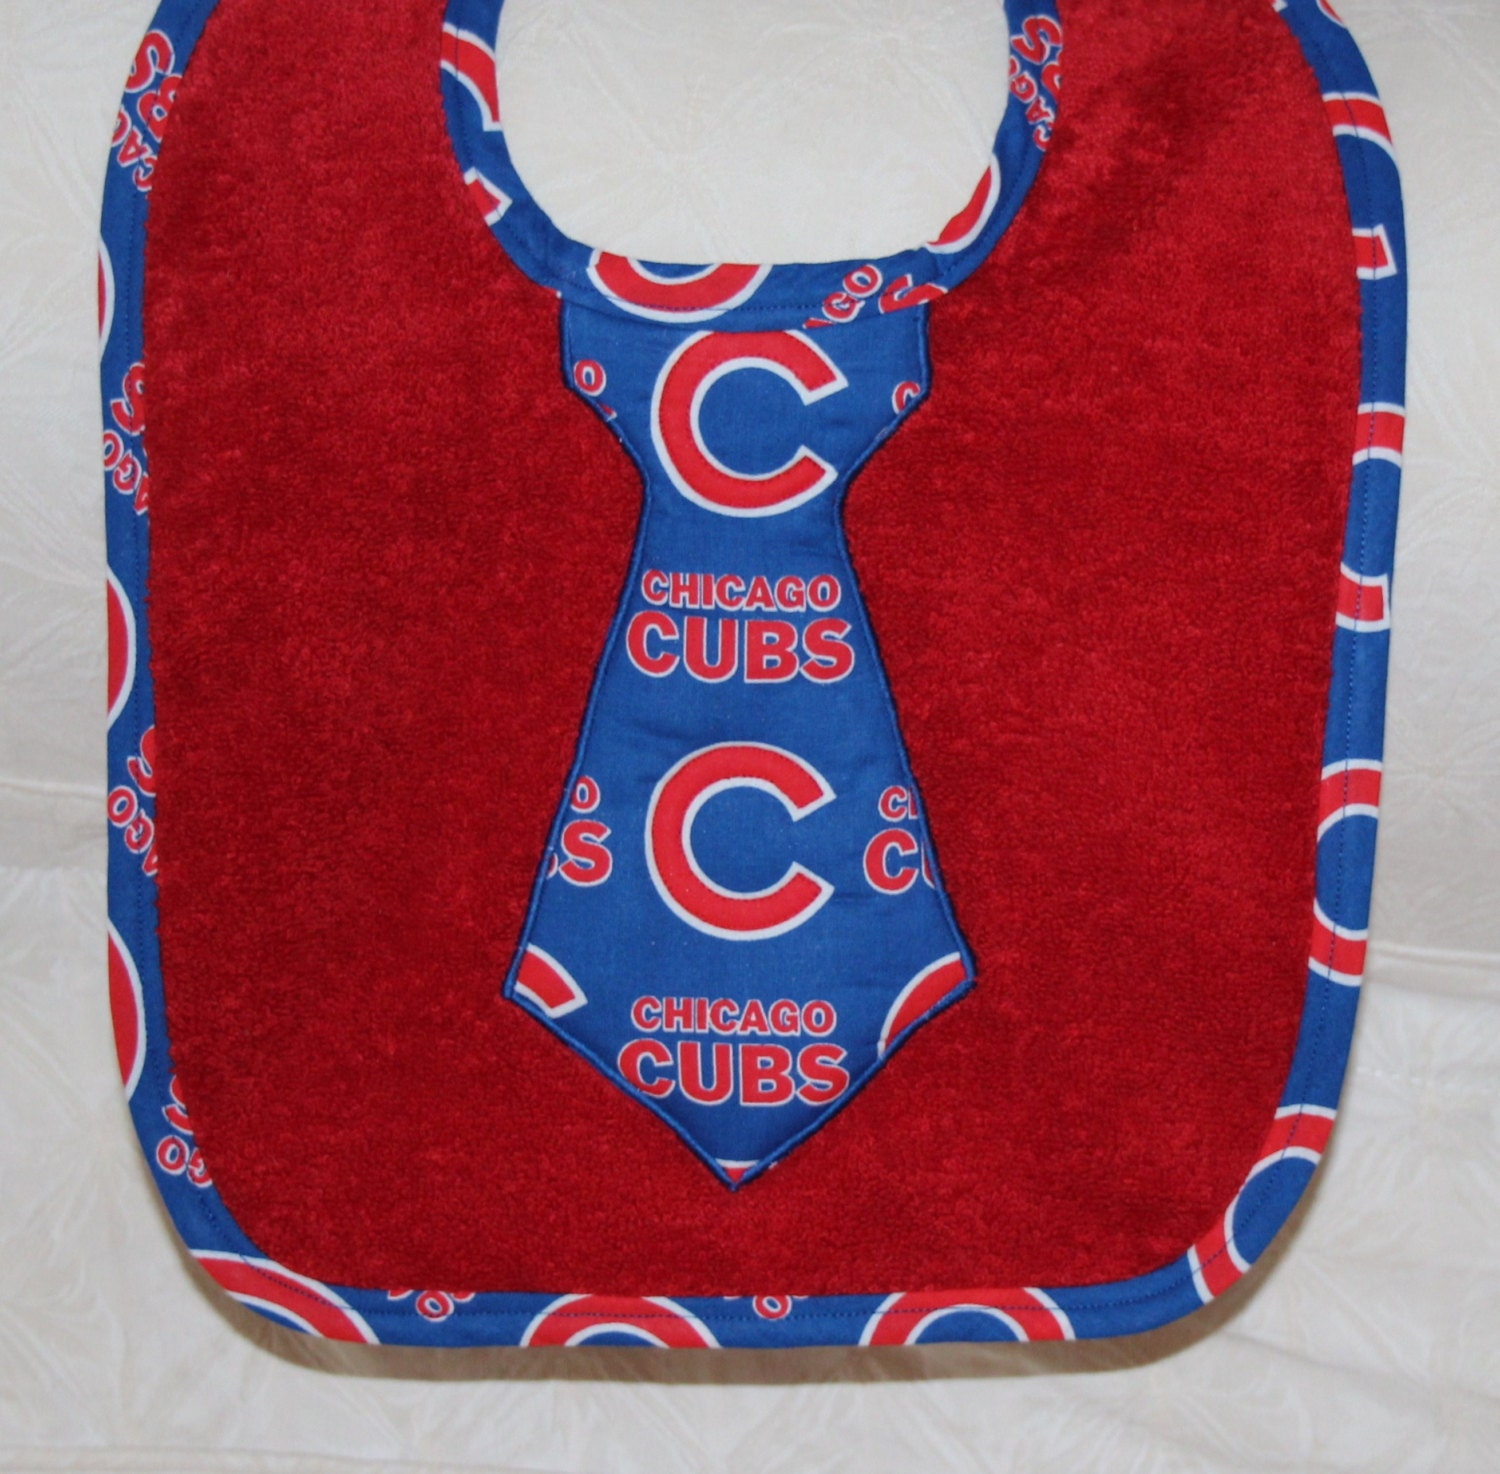 Chicago Cubs Baby Baseball Baby Boy Cubs Tie Bib on a Red